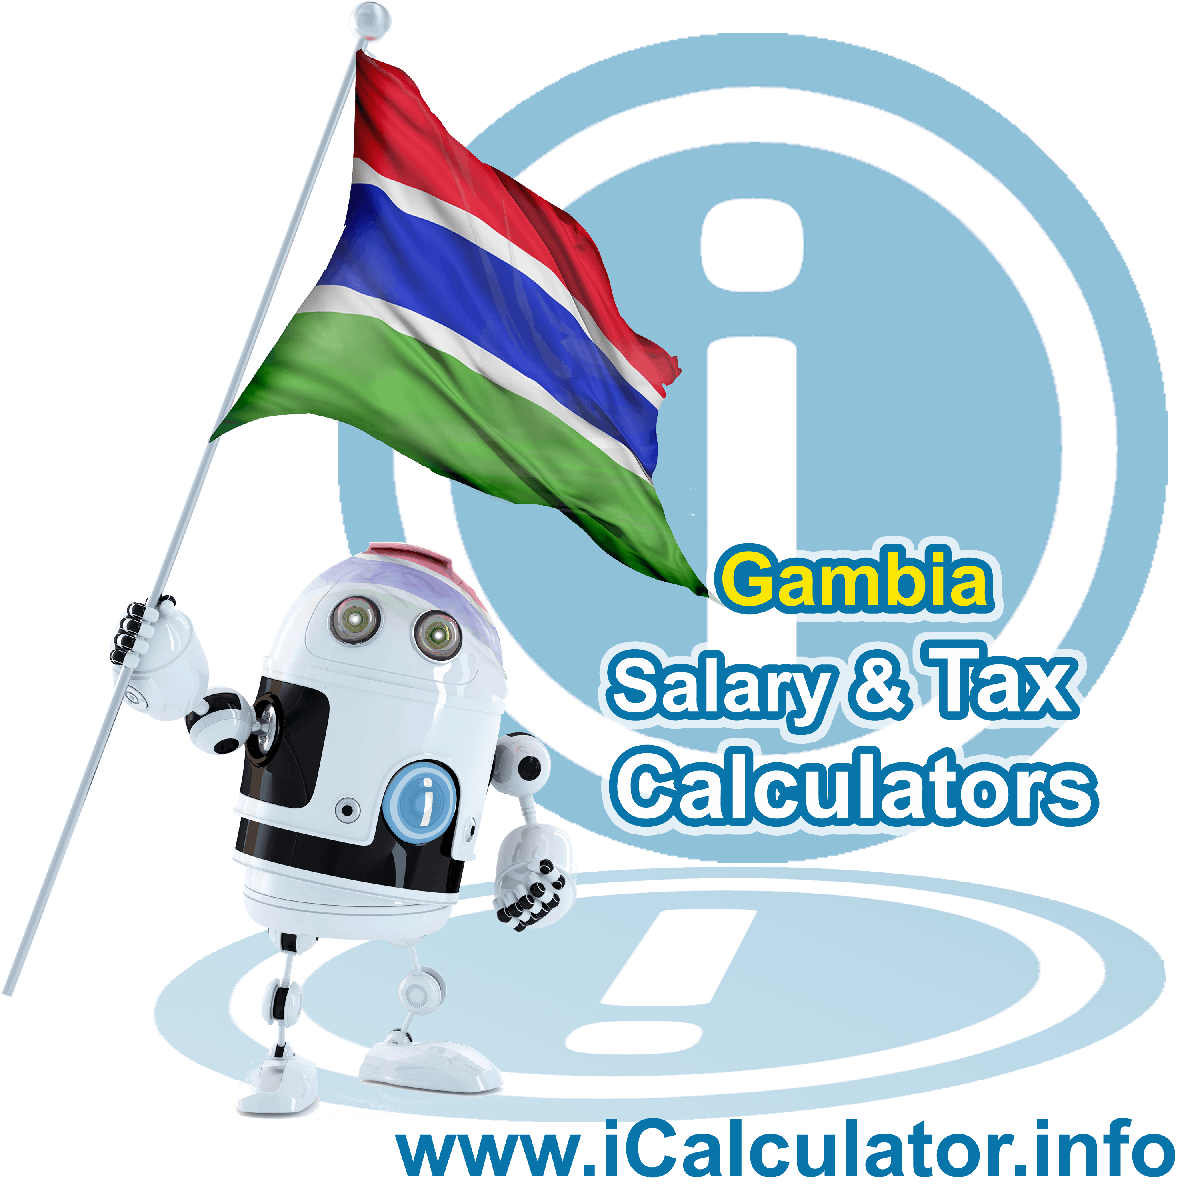 Gambia Tax Calculator. This image shows the Gambia flag and information relating to the tax formula for the Gambia Salary Calculator